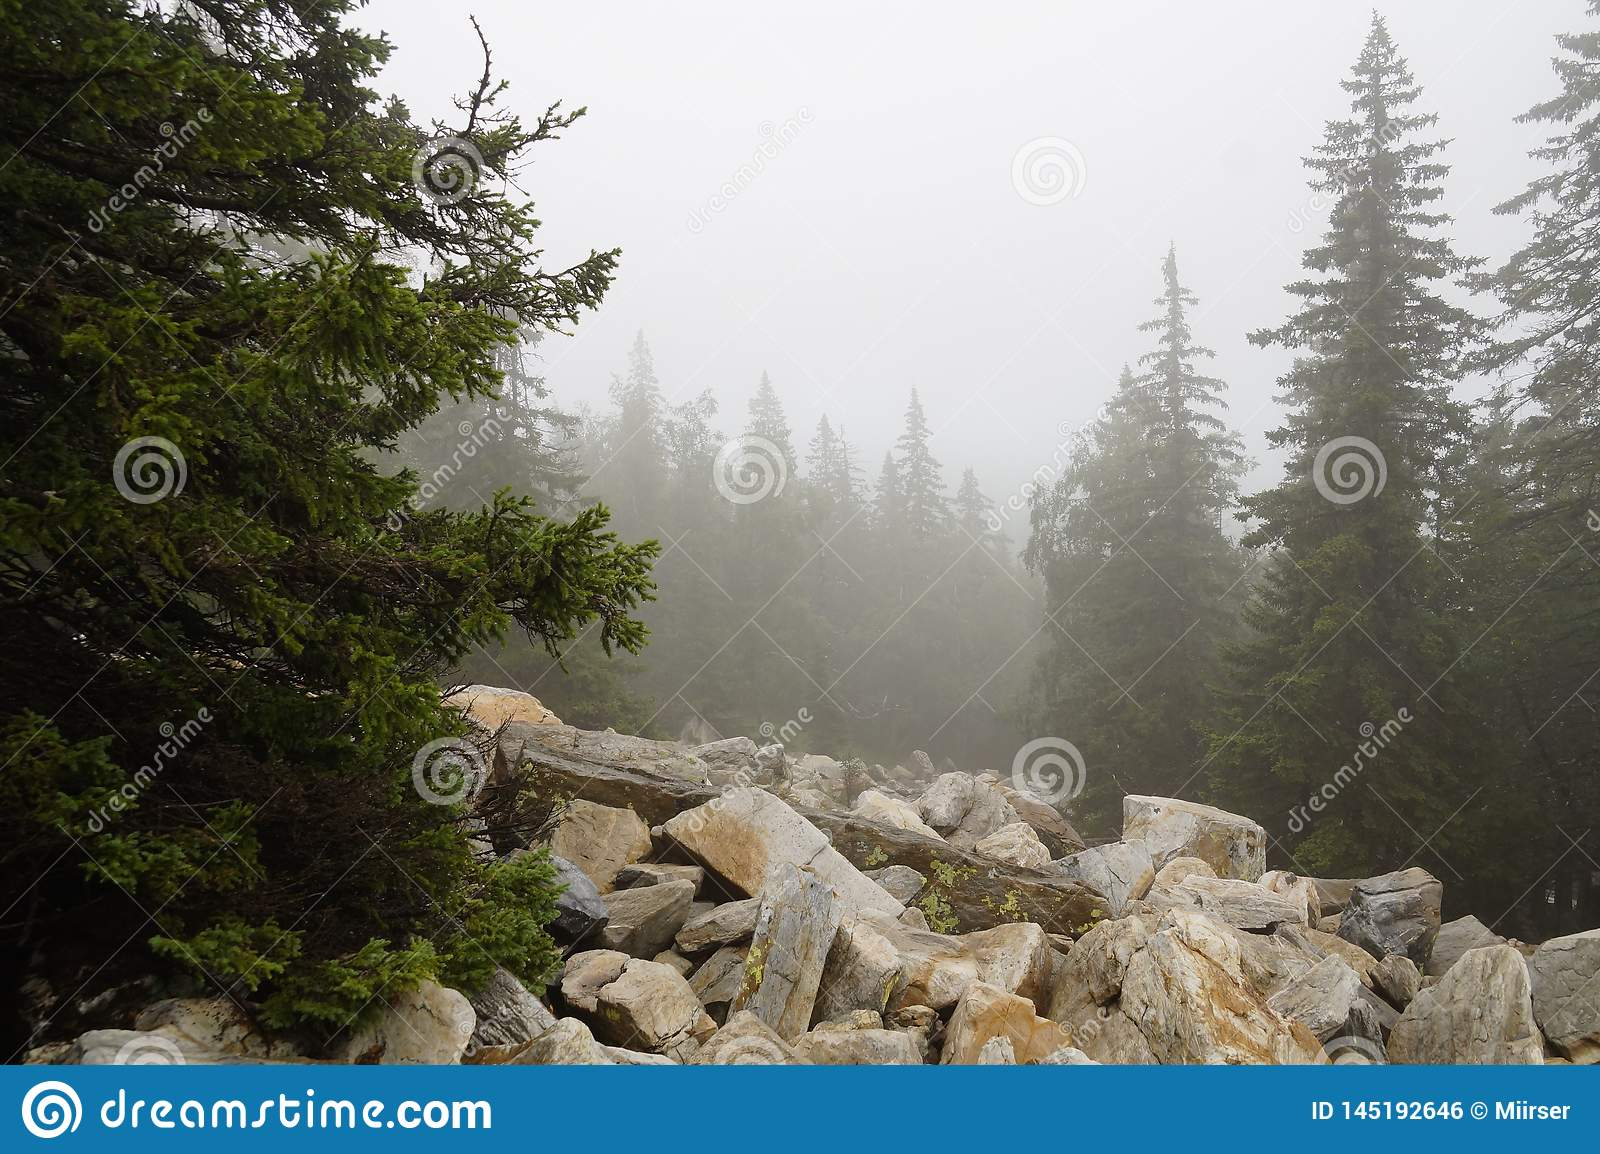 Misty and mysterious forest. The Mountain ` Zyuratkul.` Ural. Autumn